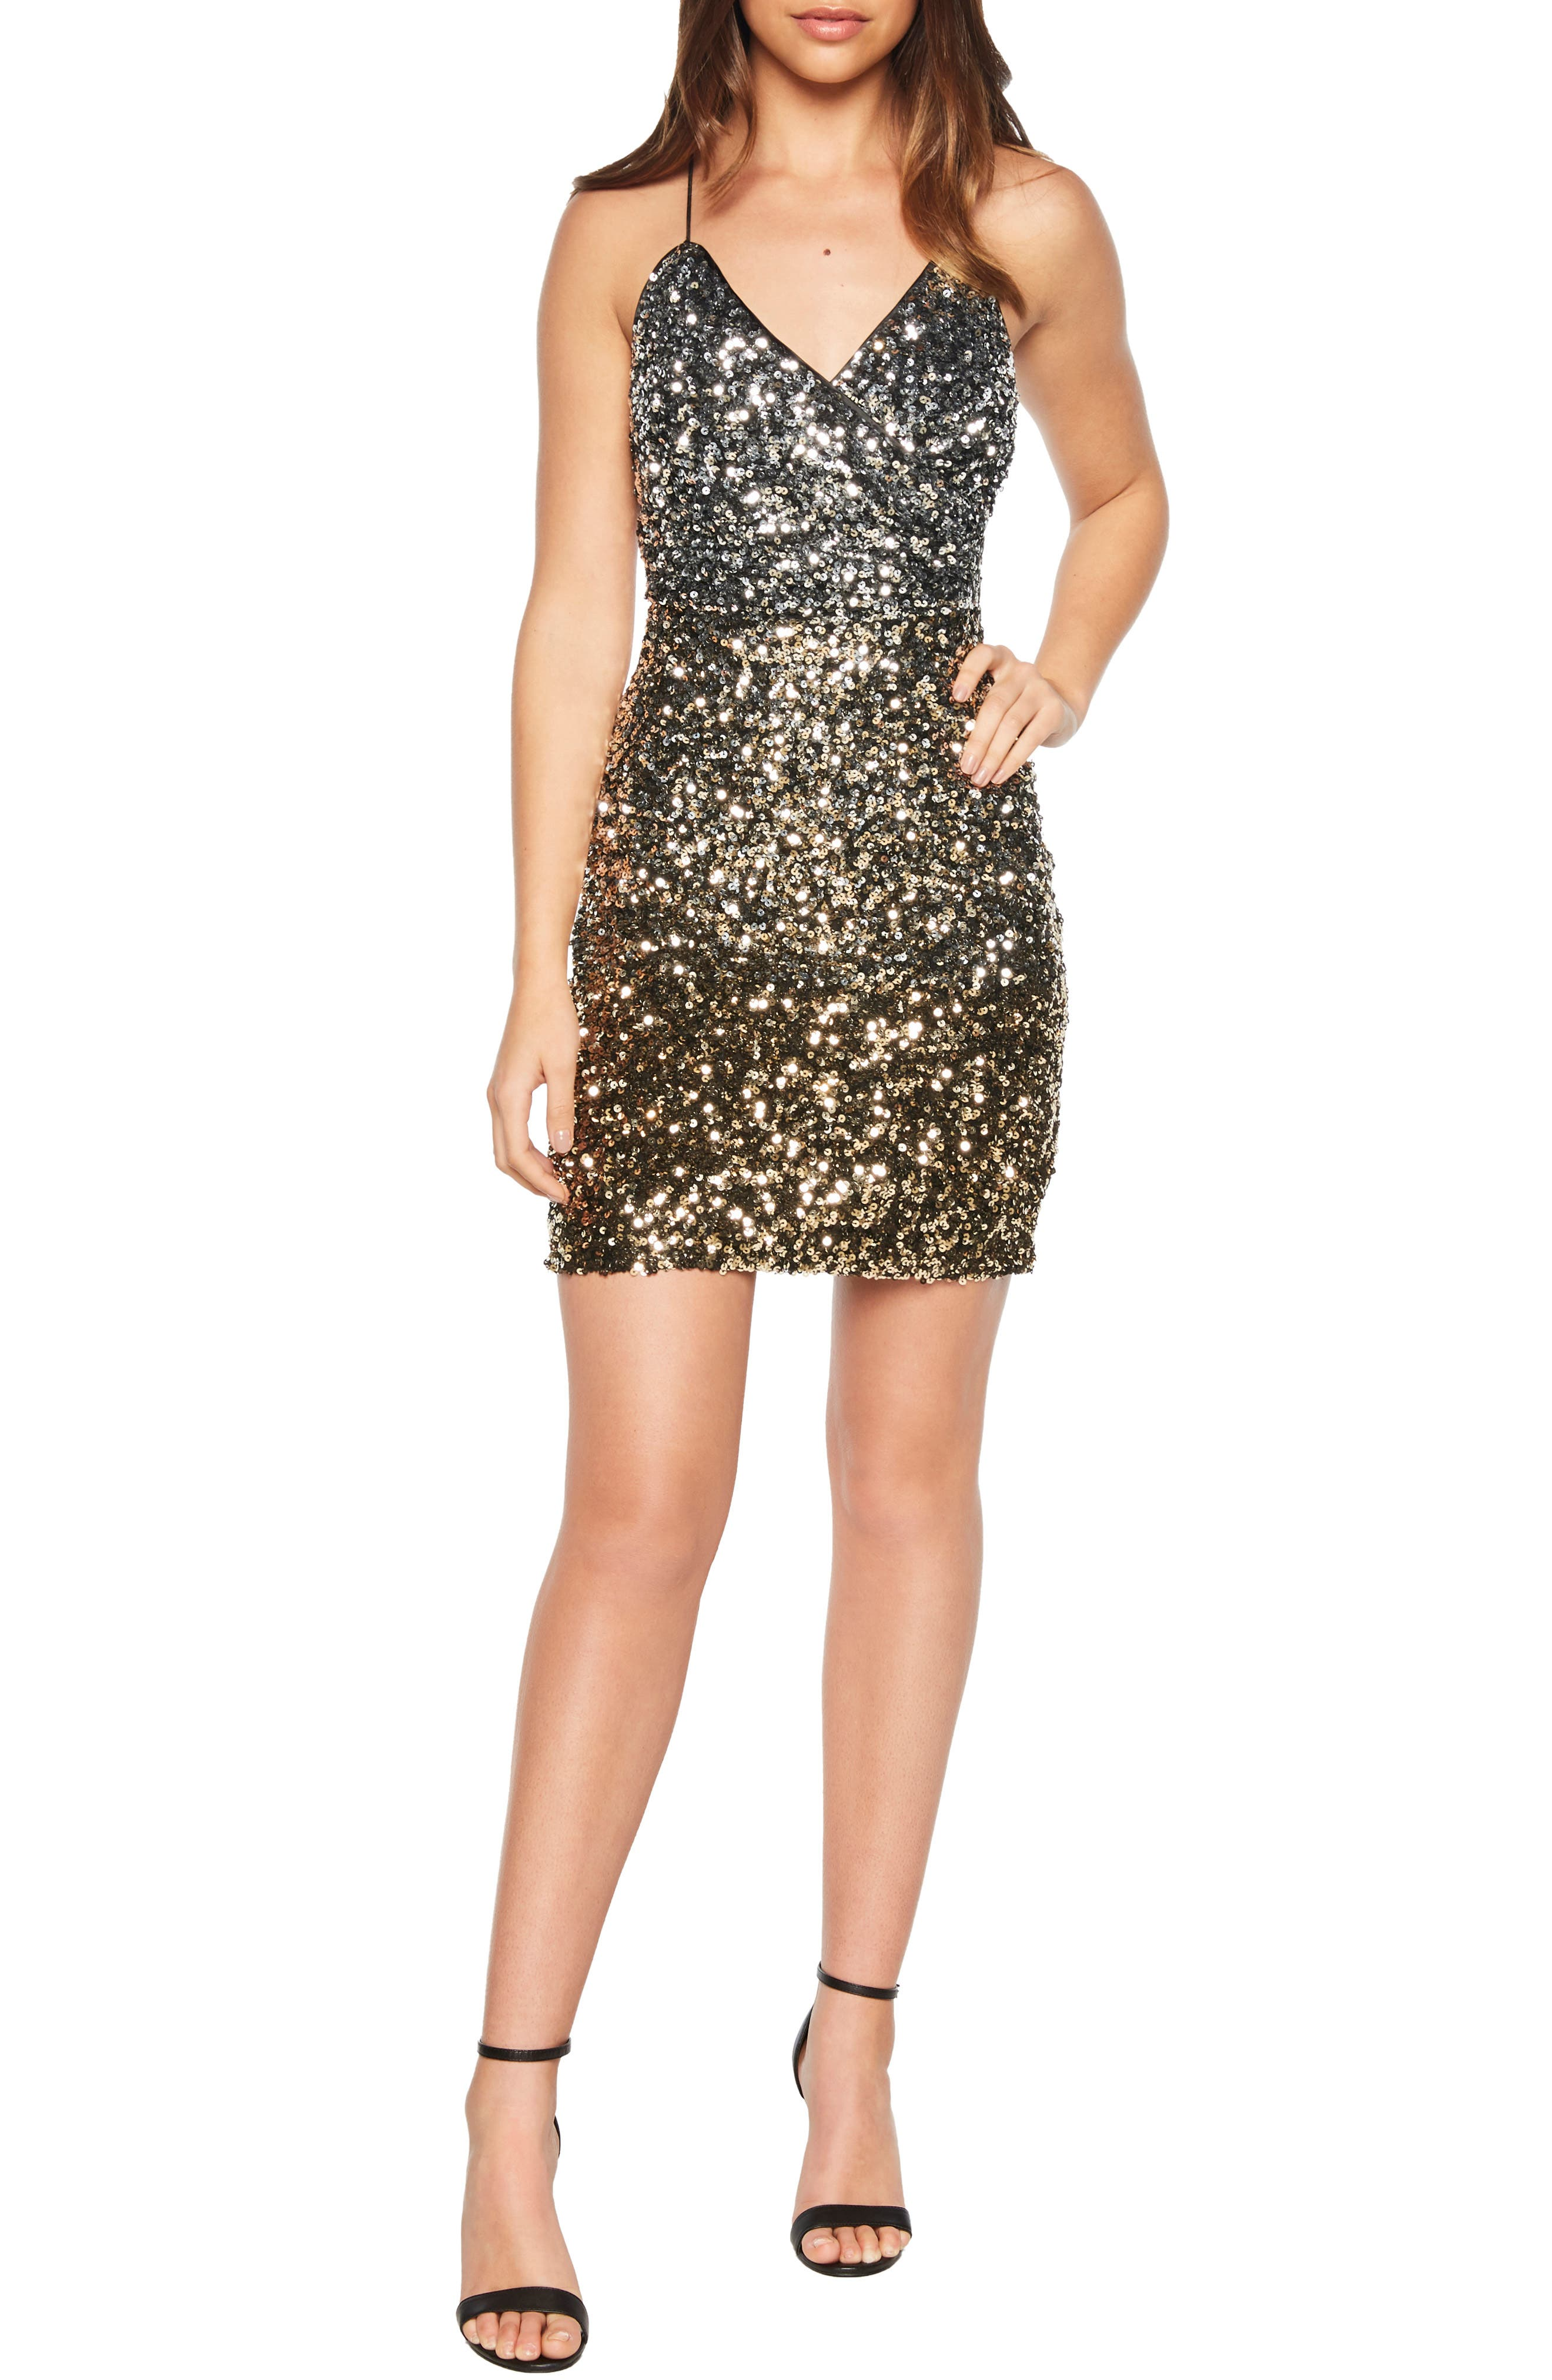 Glimmer Minidress,                             Main thumbnail 1, color,                             SILVER GOLD SEQUIN